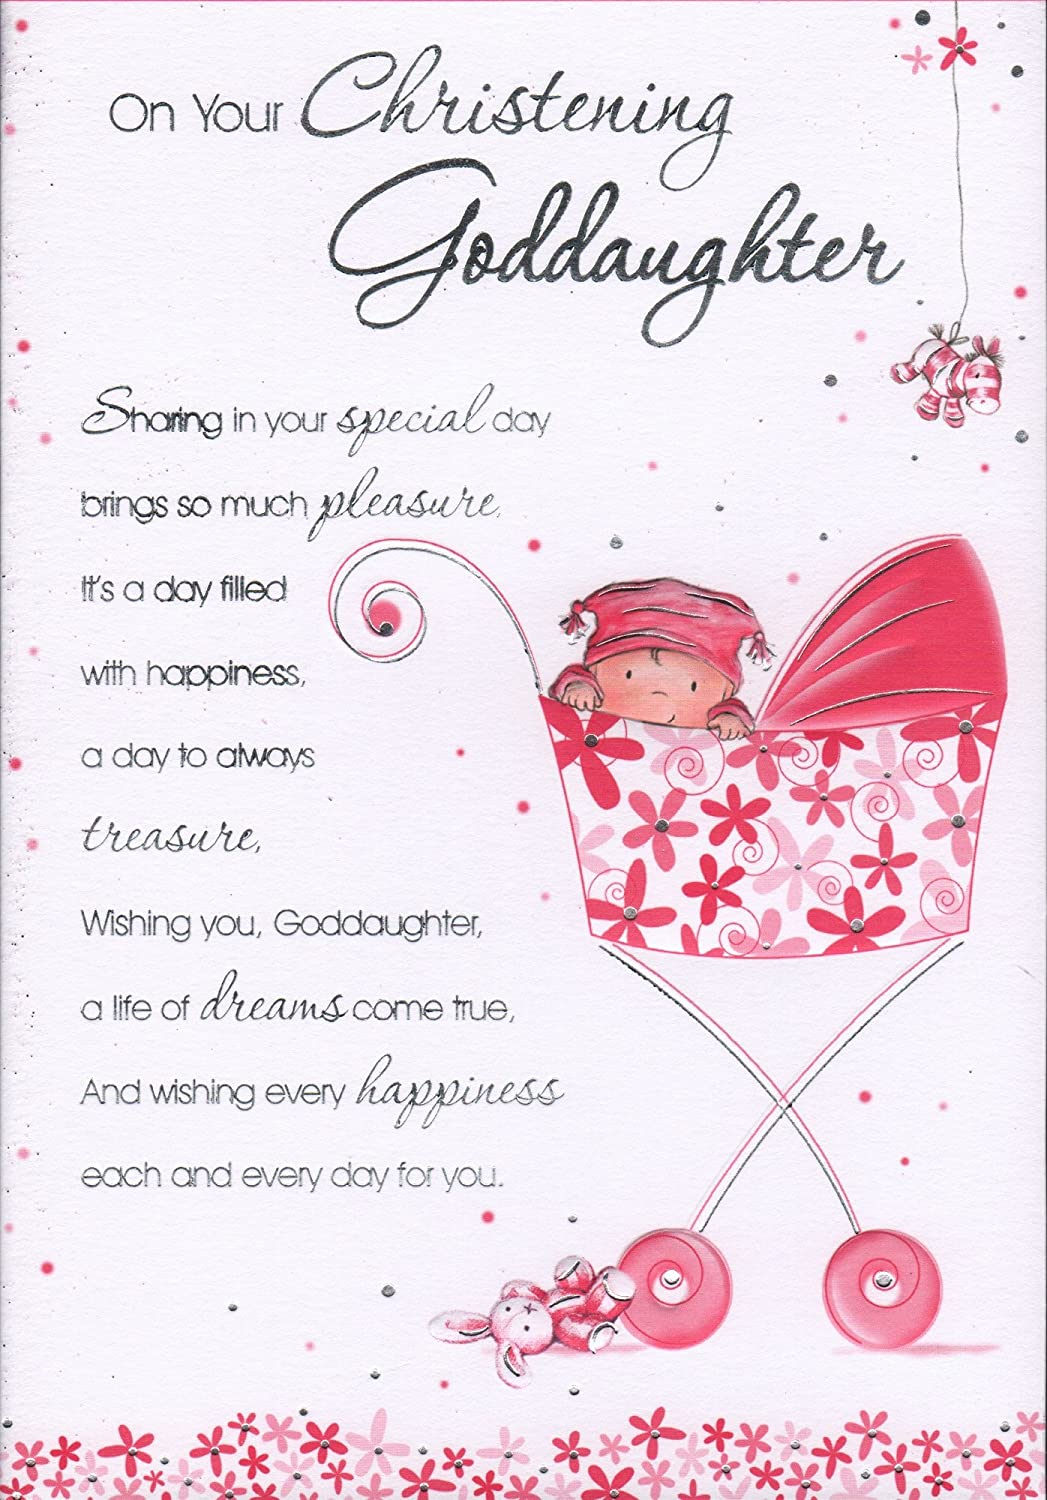 Goddaughter christening card on your christening goddaughter goddaughter christening card on your christening goddaughter free uk shipping amazon garden outdoors kristyandbryce Choice Image